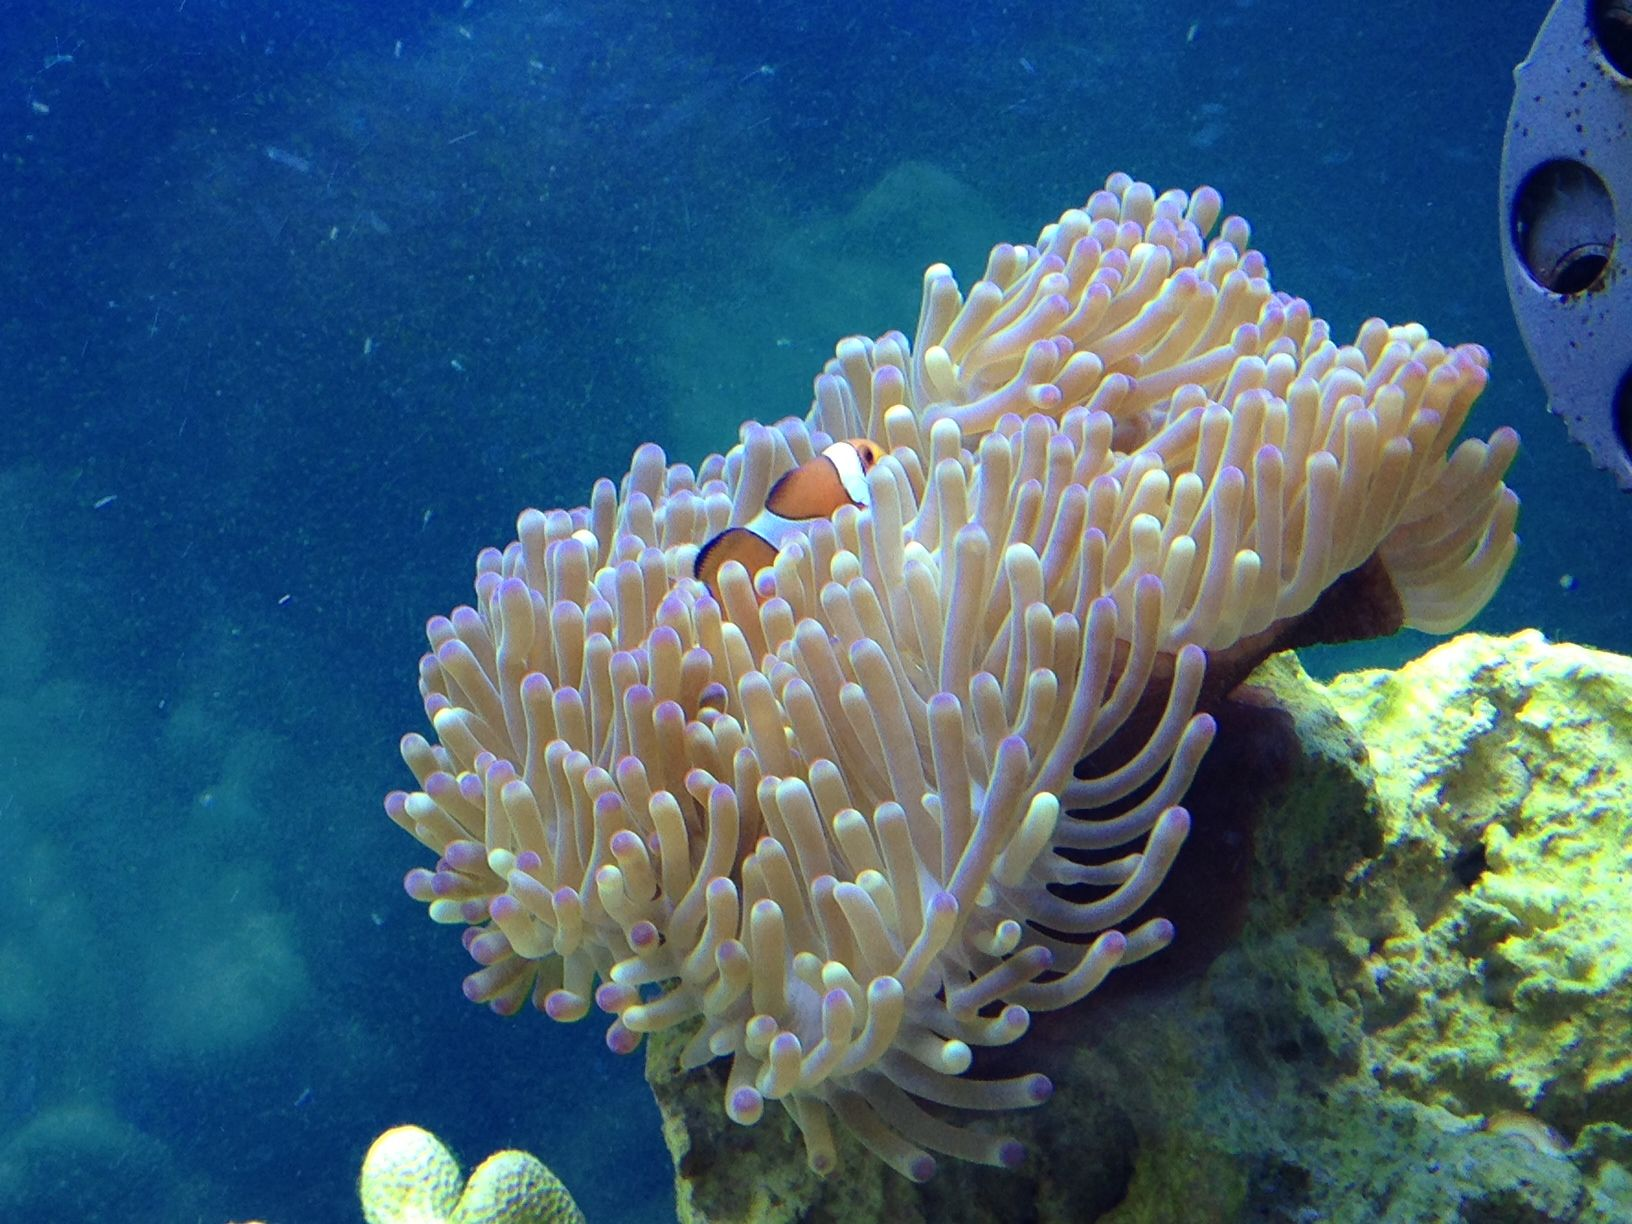 clownfish and hosting anemone in our Saltwater Aquarium